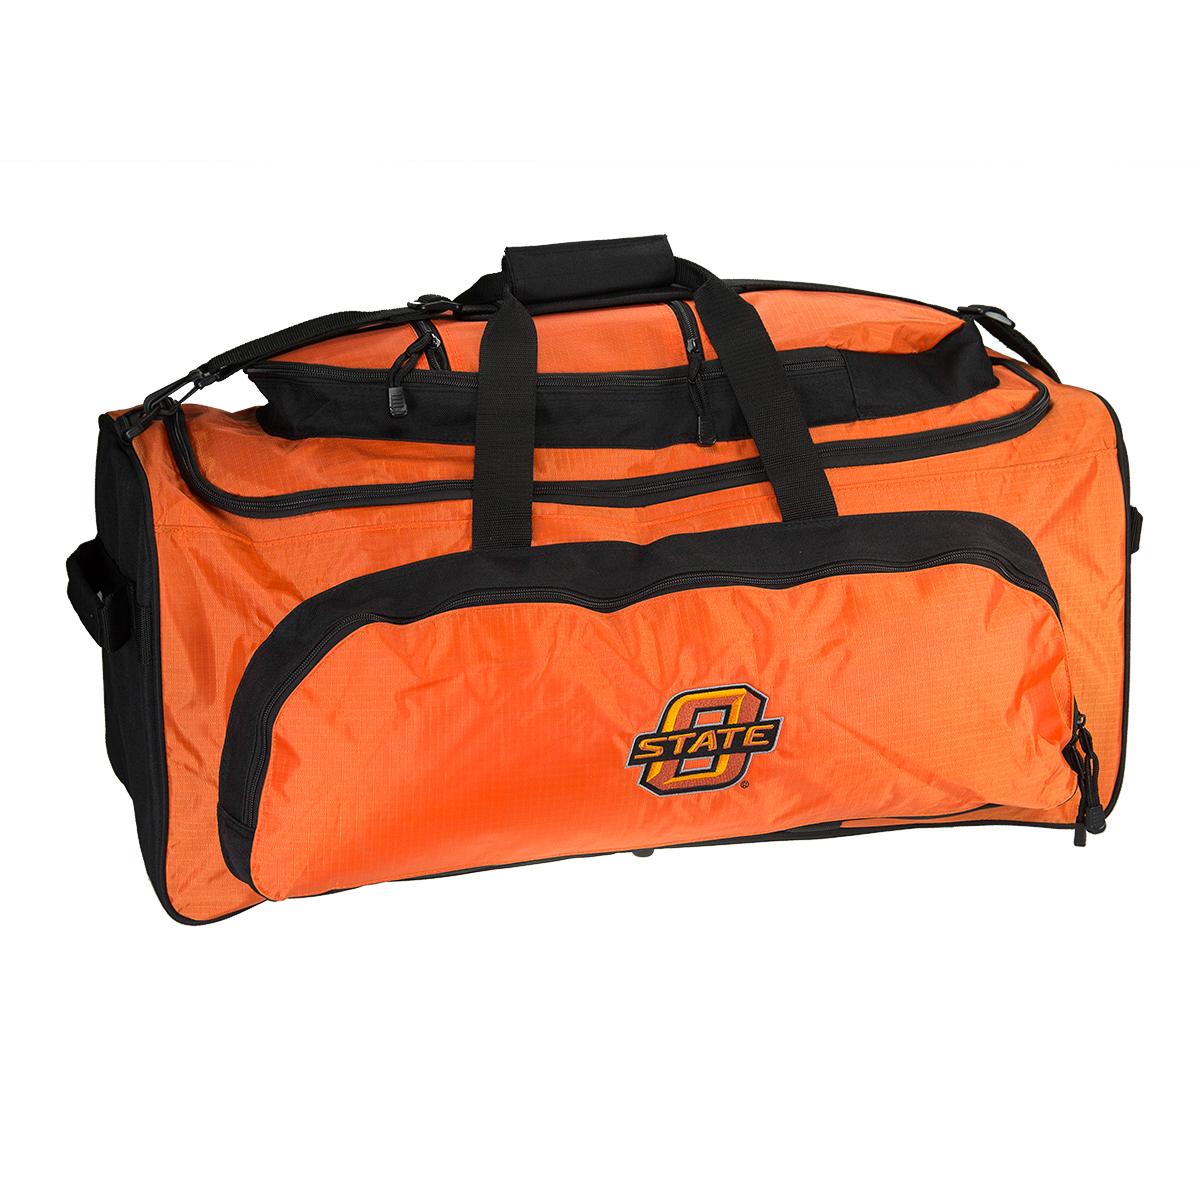 "NCAA Heavy Duty Collegiate Sport 27"" Large Duffel Tote Bag School College Duffle"